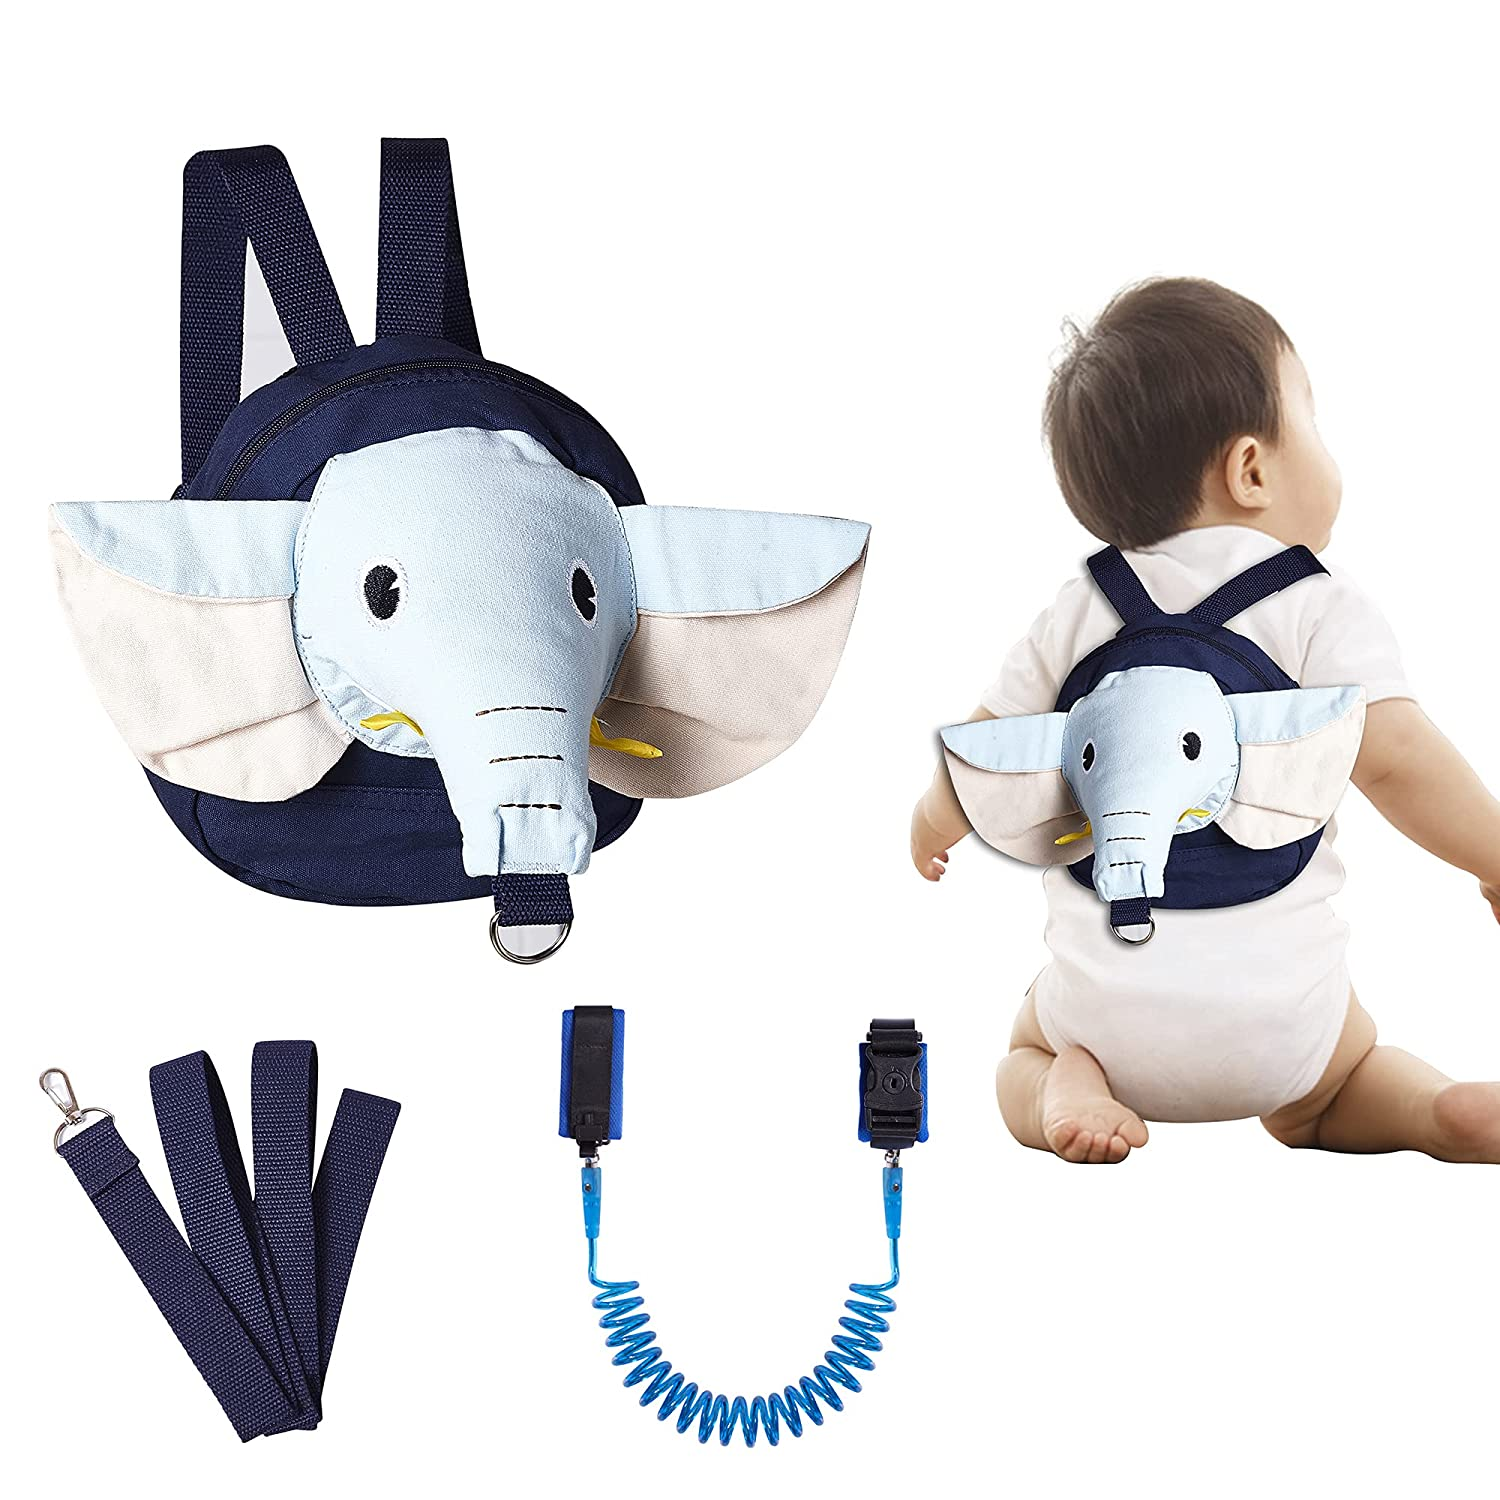 Toddlers Leash for Walking and Anti Lost Wrist Link Safety Wrist and Elephant Toddler Mini Backpack 3 in 1 for Toddlers, Child, Baby and Girls,Kids, Walking Wristband Assistant Strap Belt